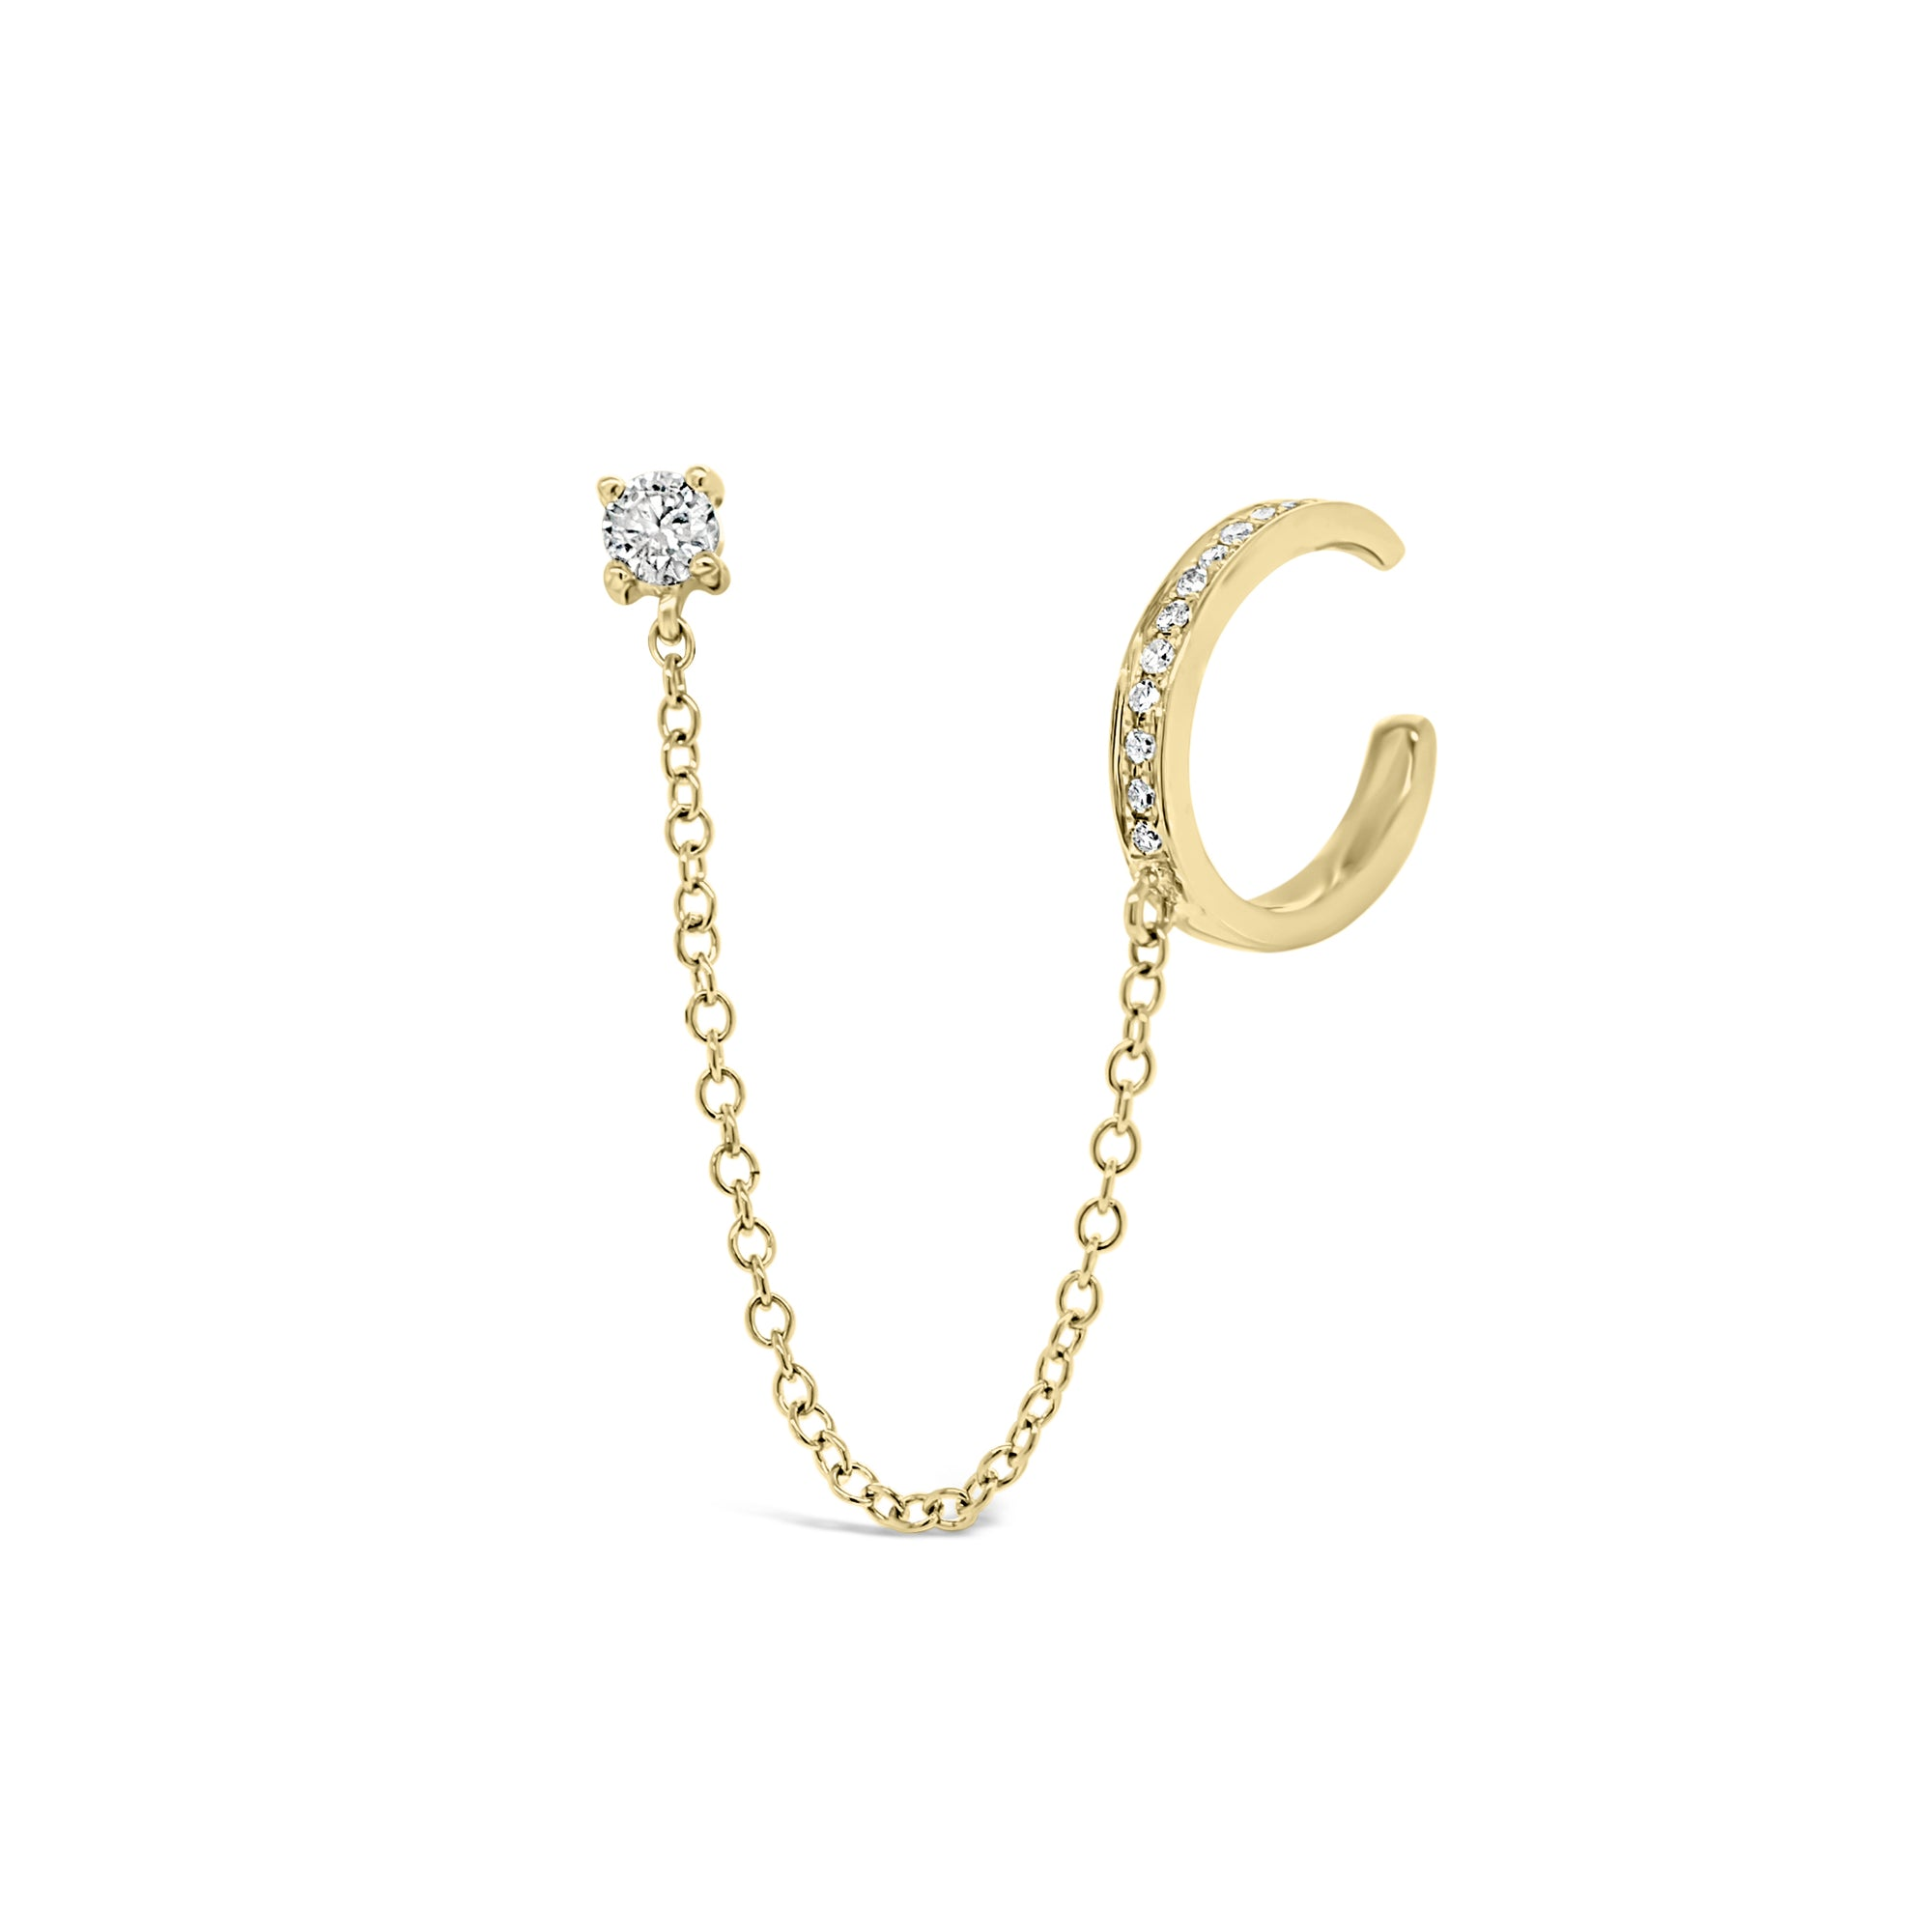 Diamond Ear Cuff with Chain and Diamond Stud